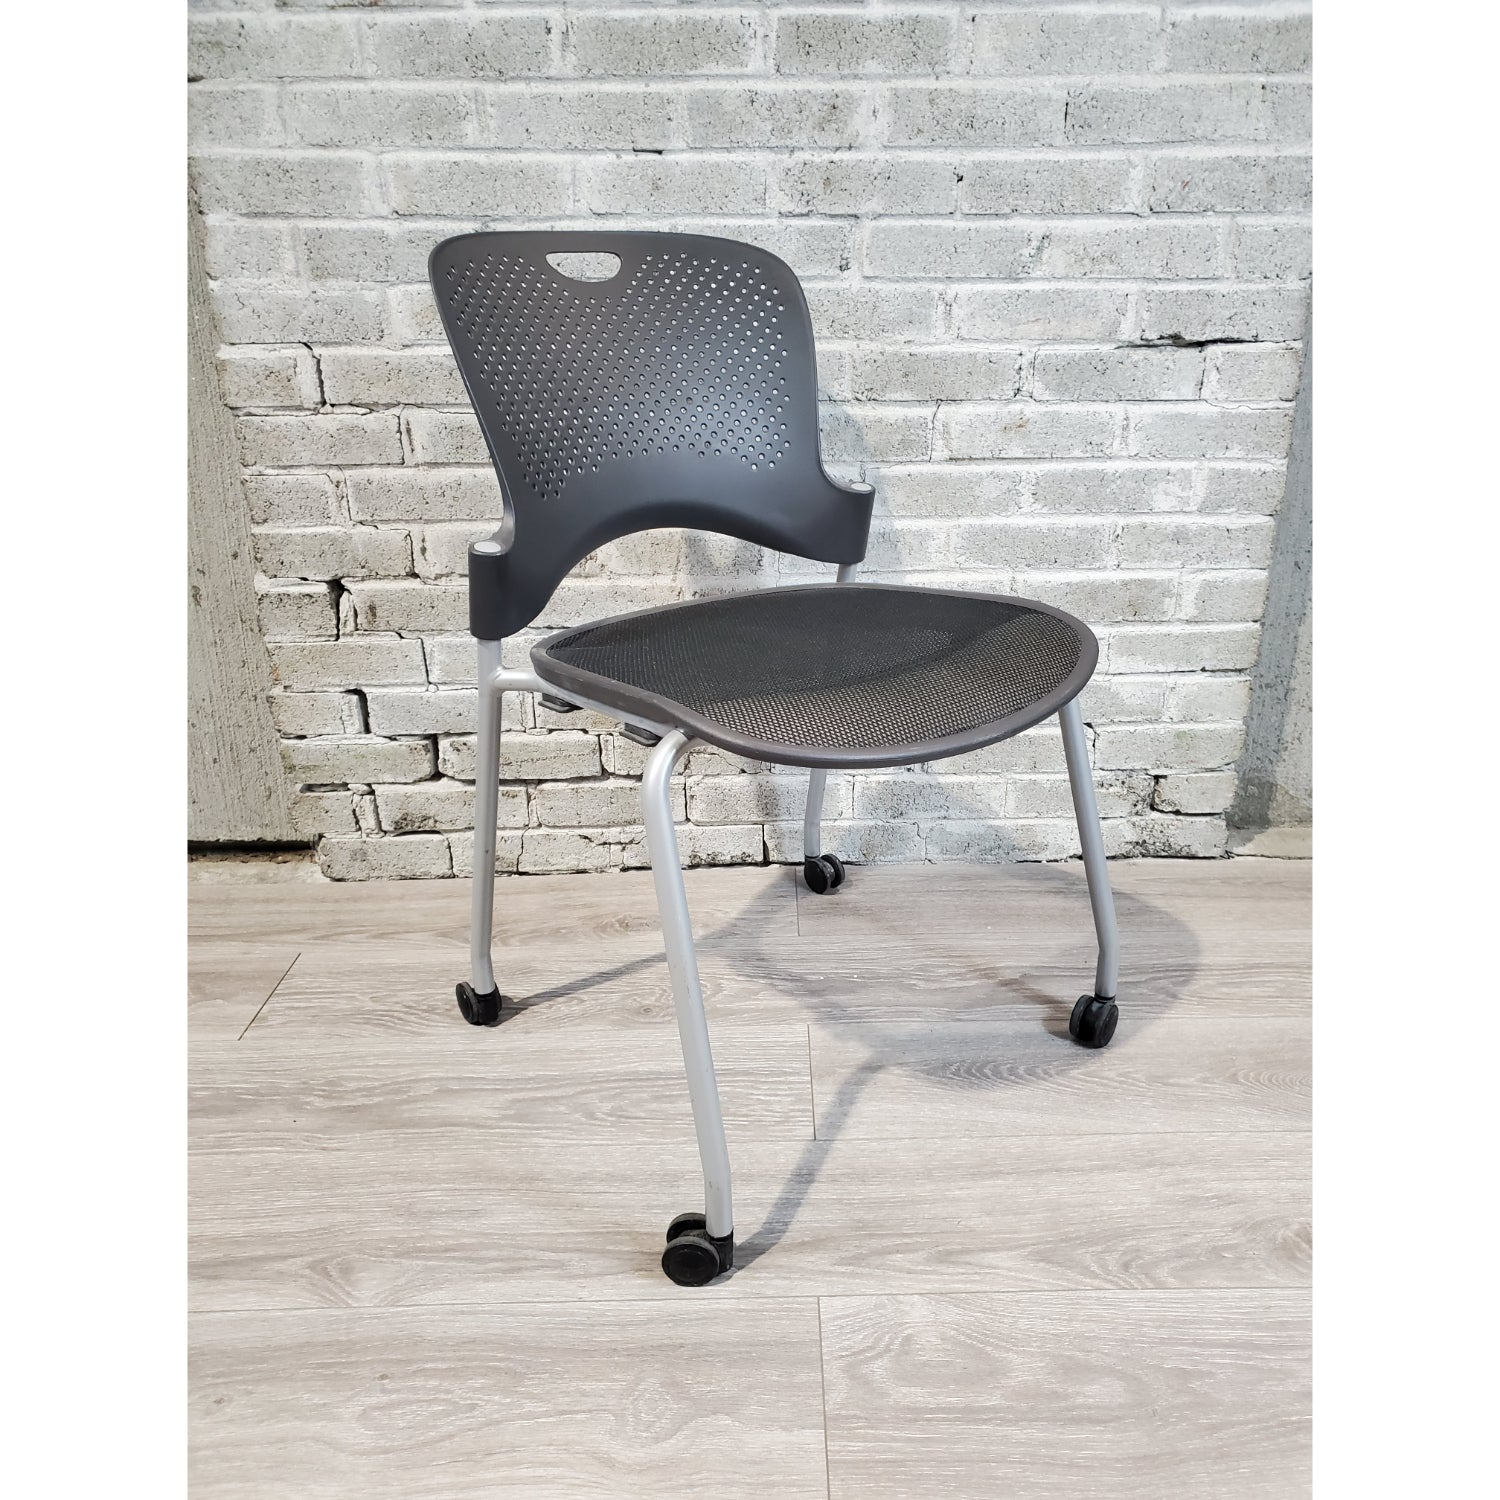 Pre-Owned - Used Herman Miller Caper Side Chair with Casters - Black - Duckys Office Furniture